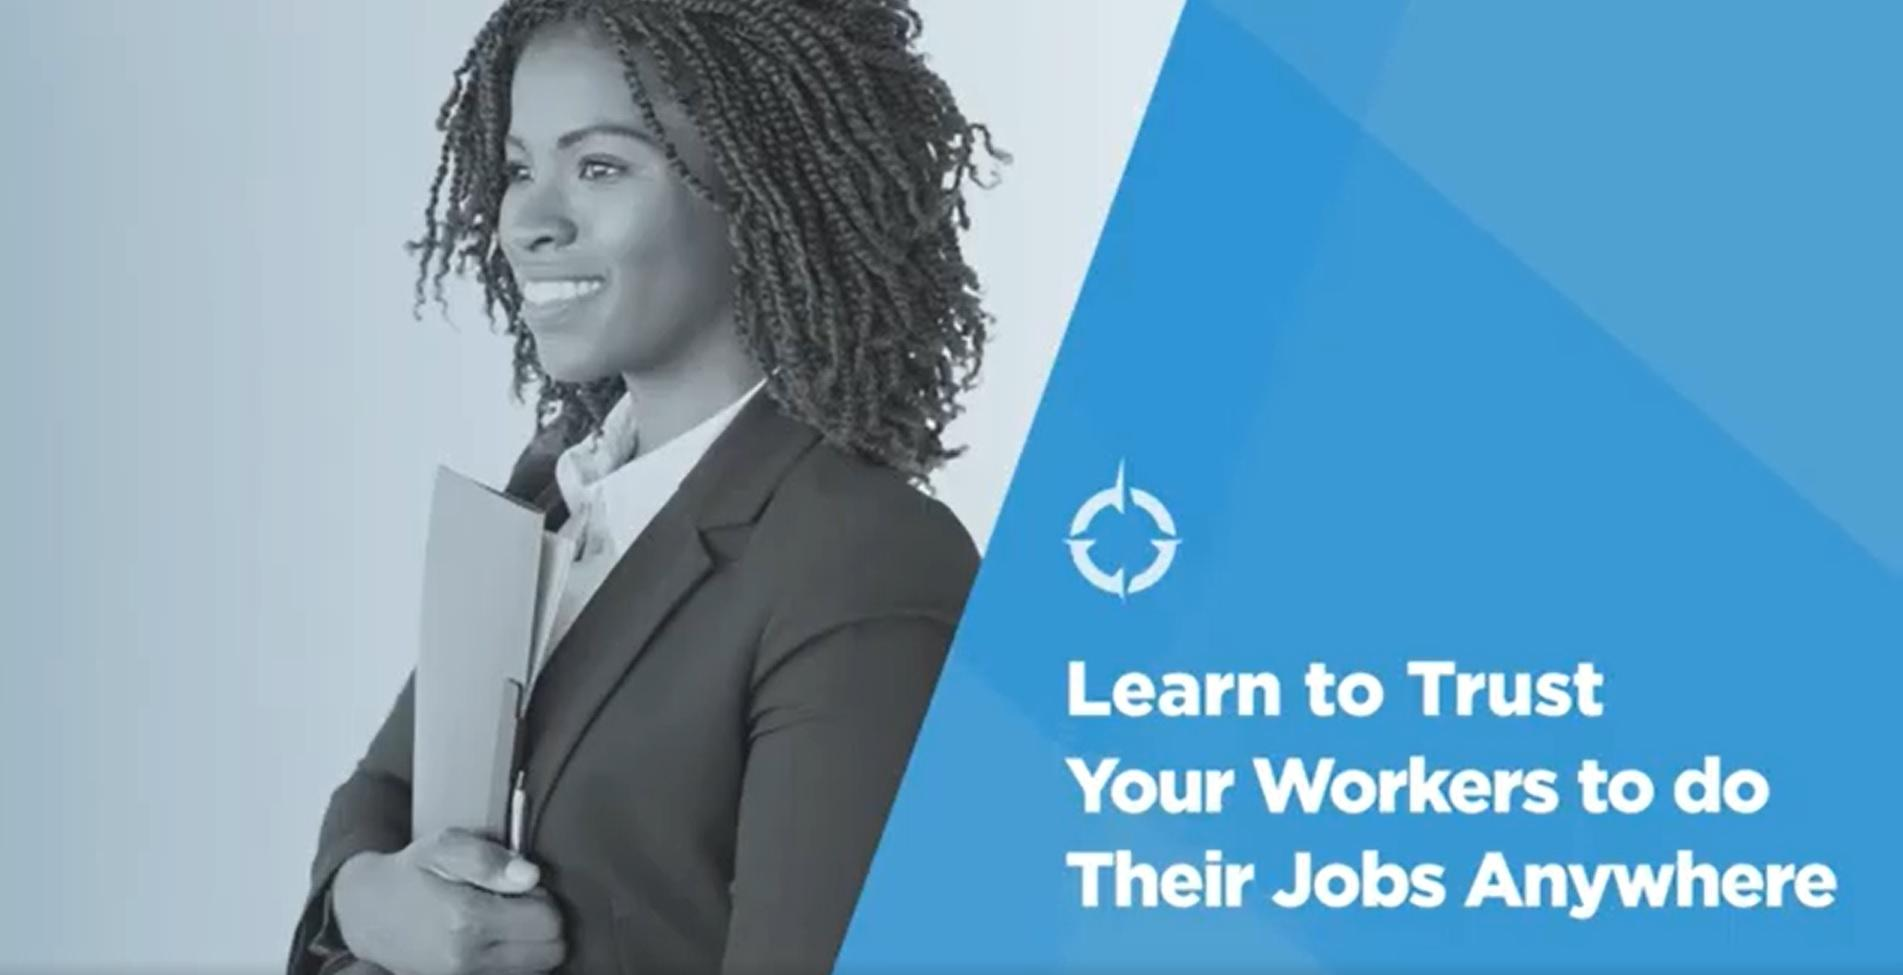 Video: Be a Better Leader: Learn to Trust Your Workers to do Their Jobs Anywhere